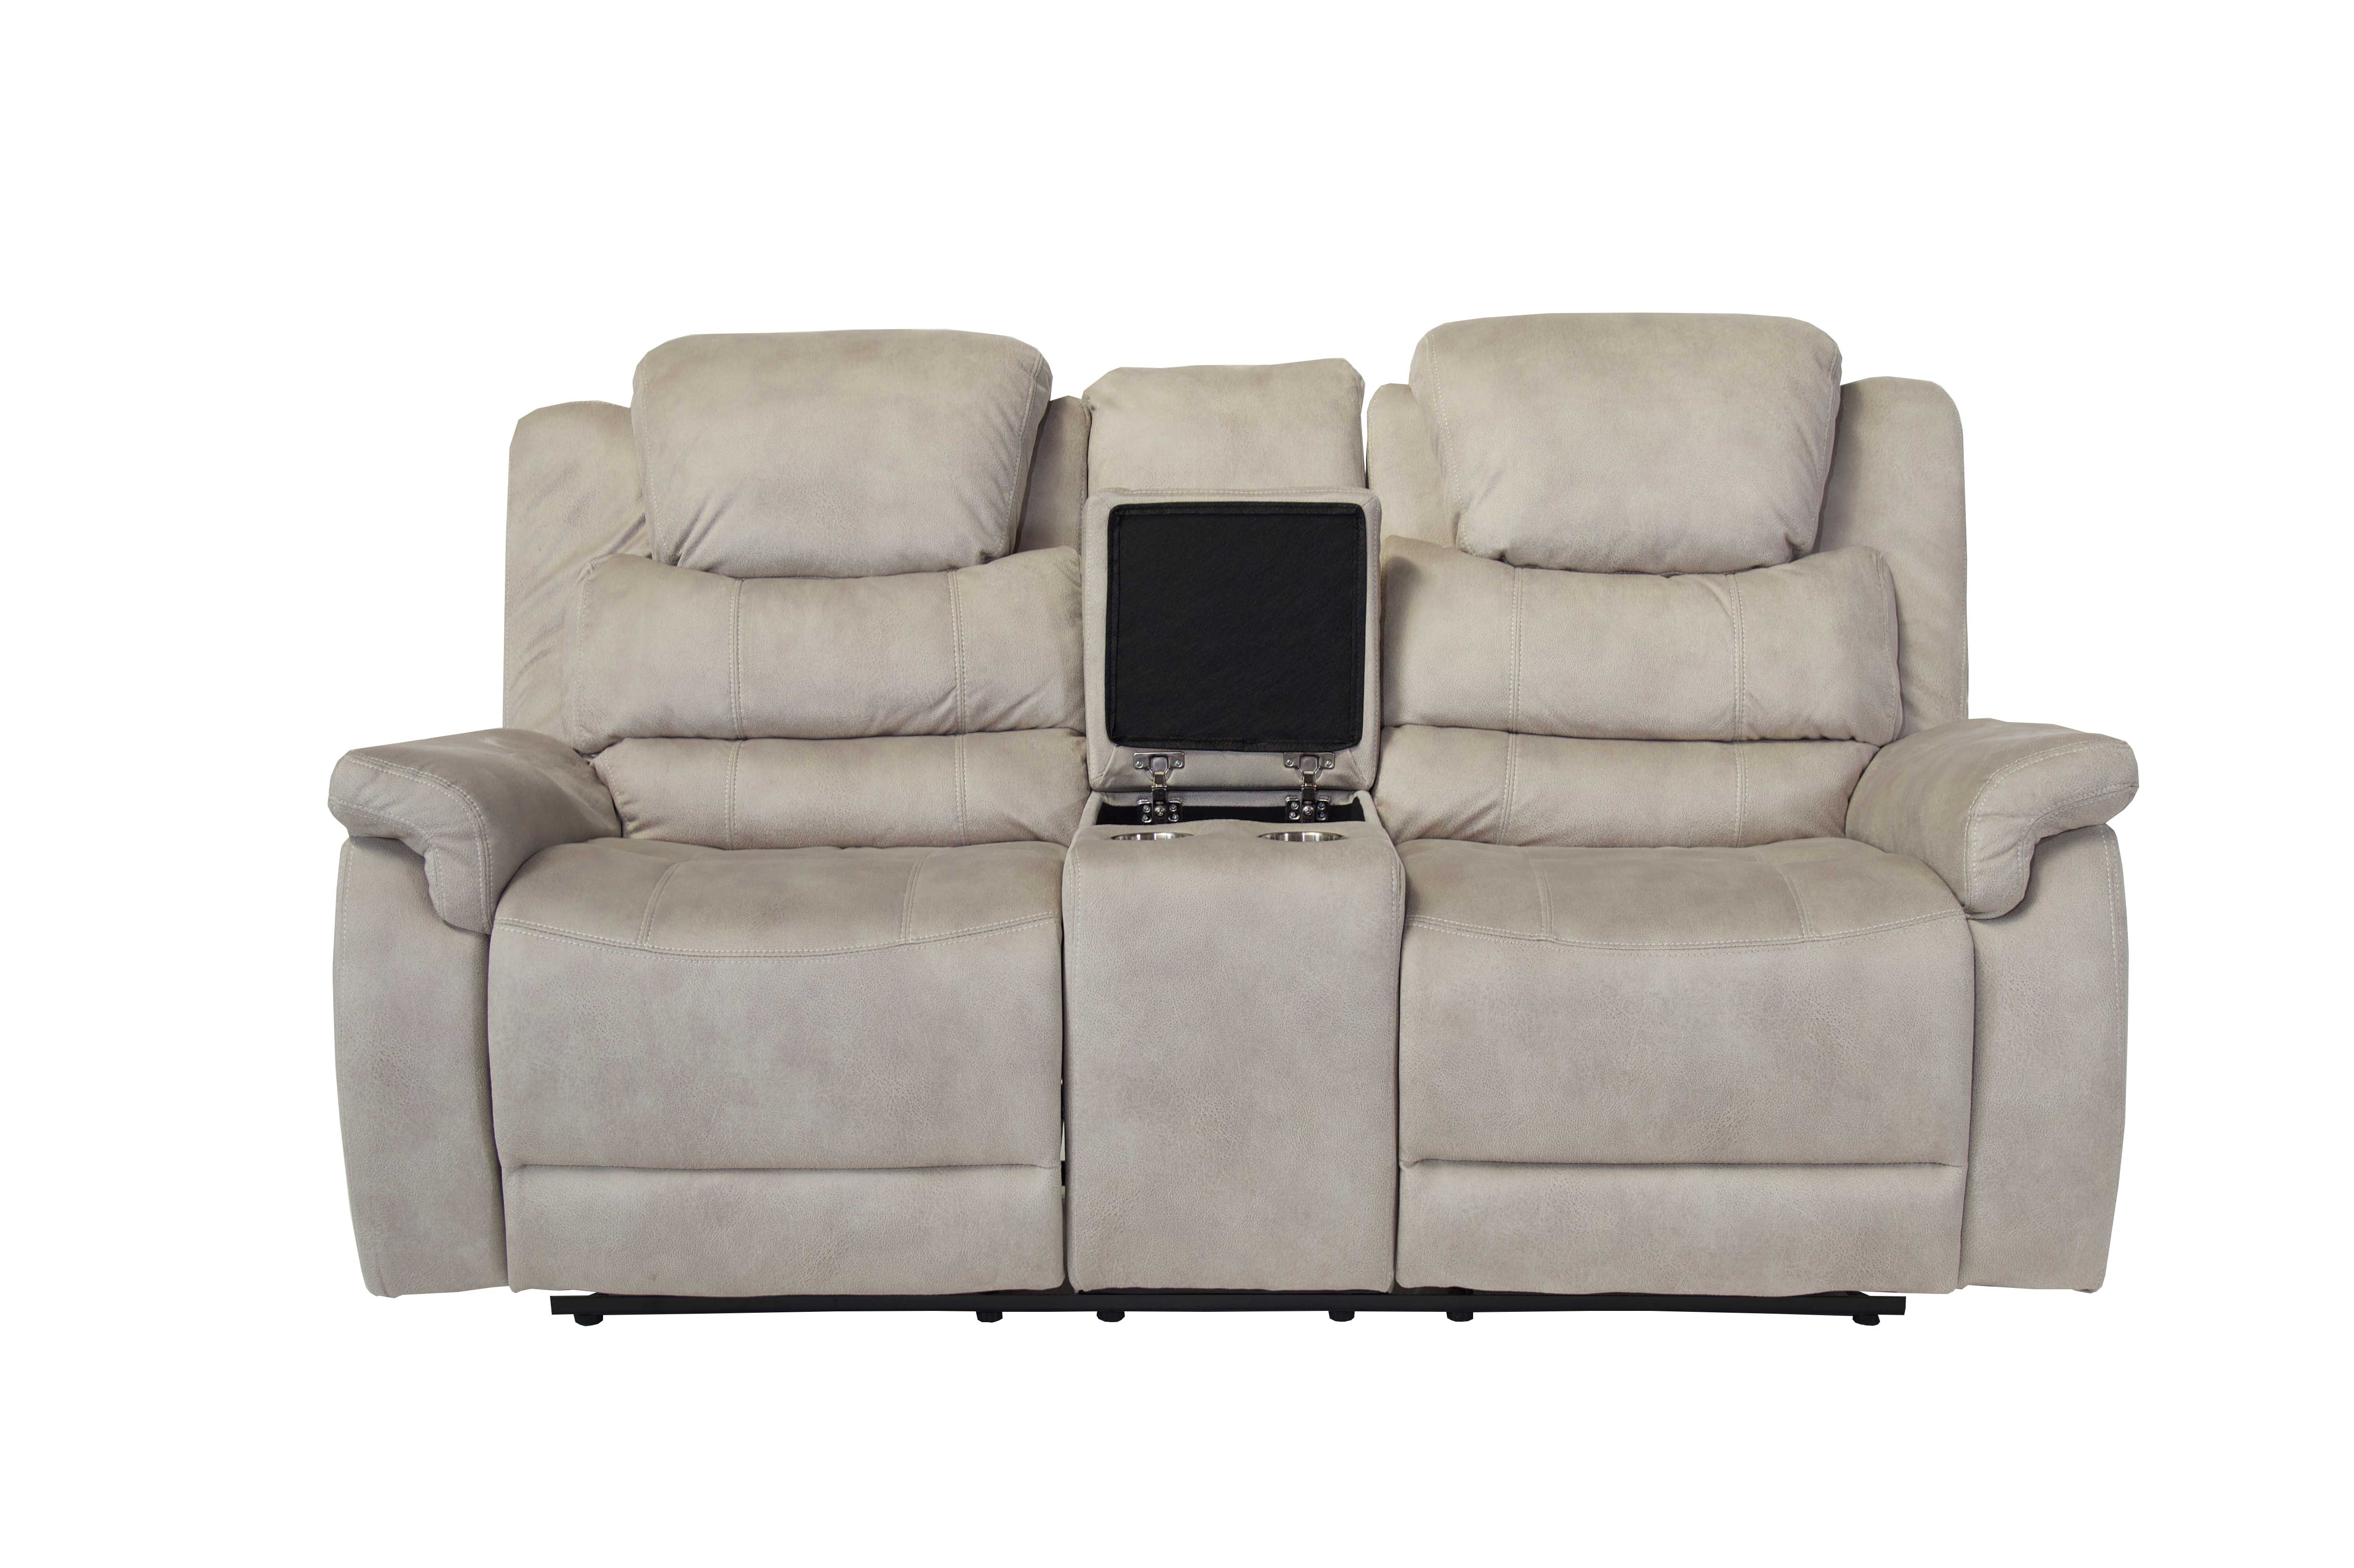 ... Venice Recliner Lounge Suite (8)  sc 1 st  Discount Decor & Venice Recliner Lounge Suite | Lowest Prices on all Lounge Suites islam-shia.org